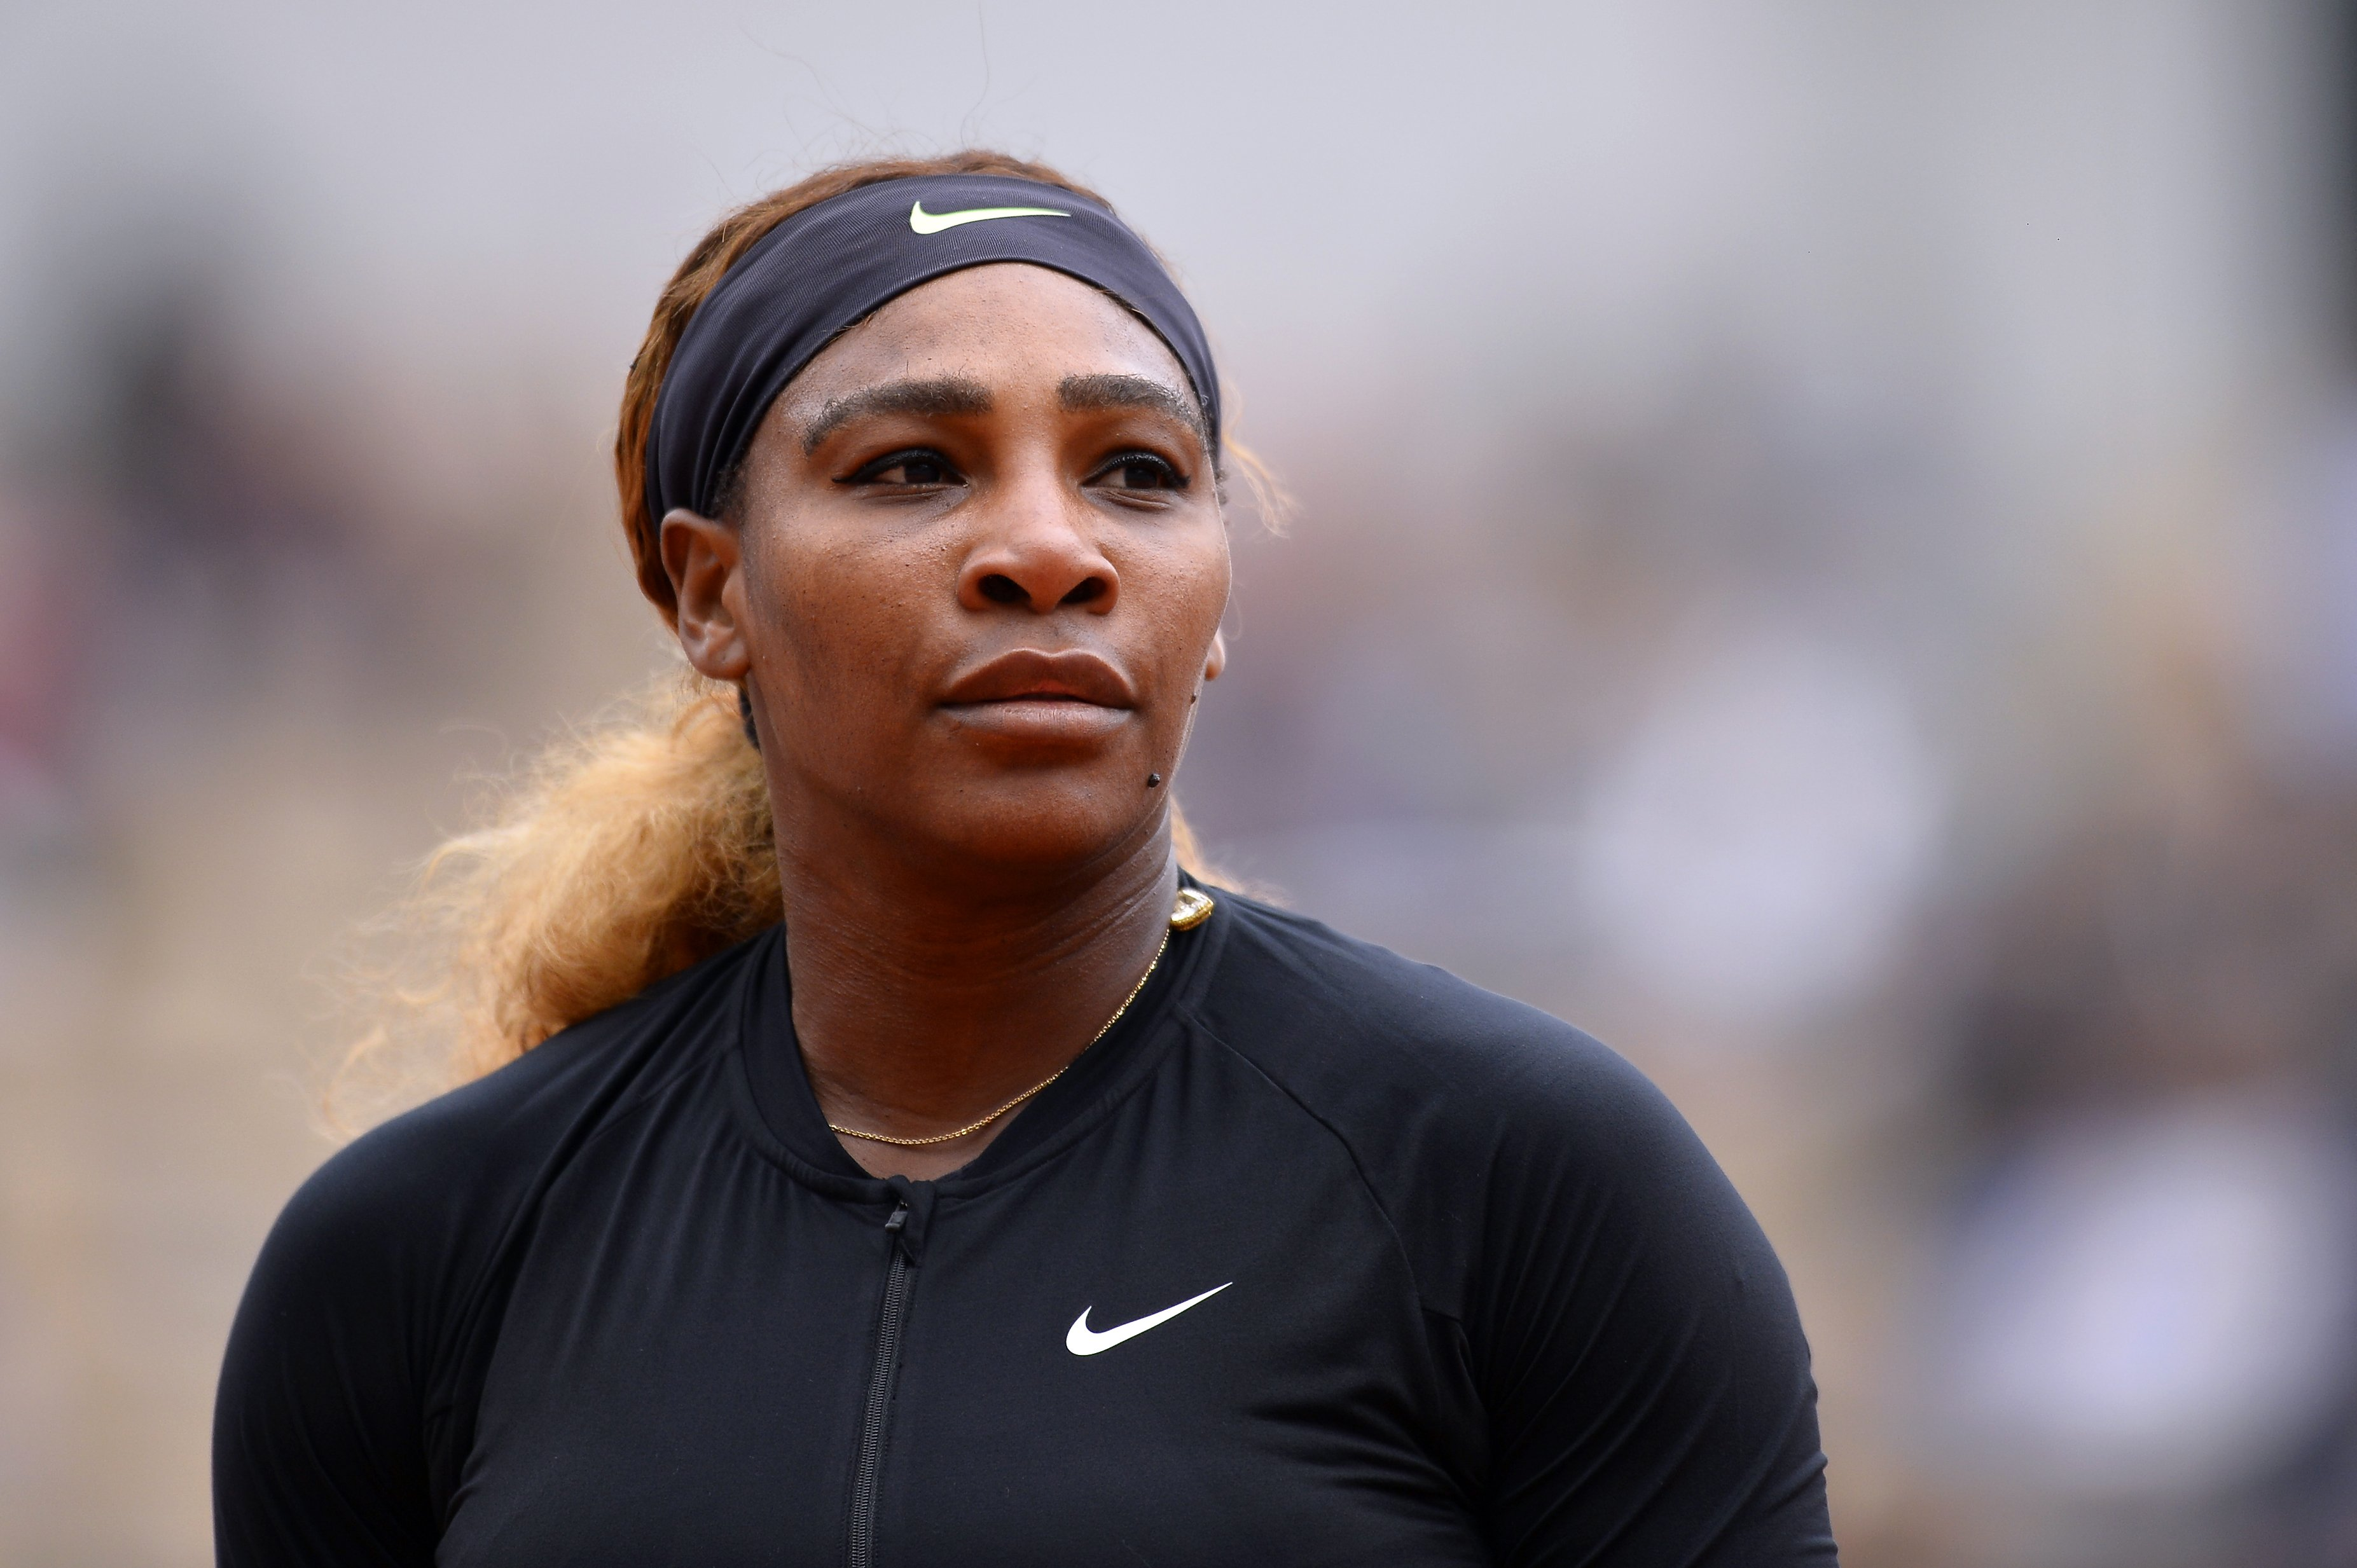 Serena Williams at the 2019 French Open at Roland Garros on May 30, 2019 | Photo: GettyImages